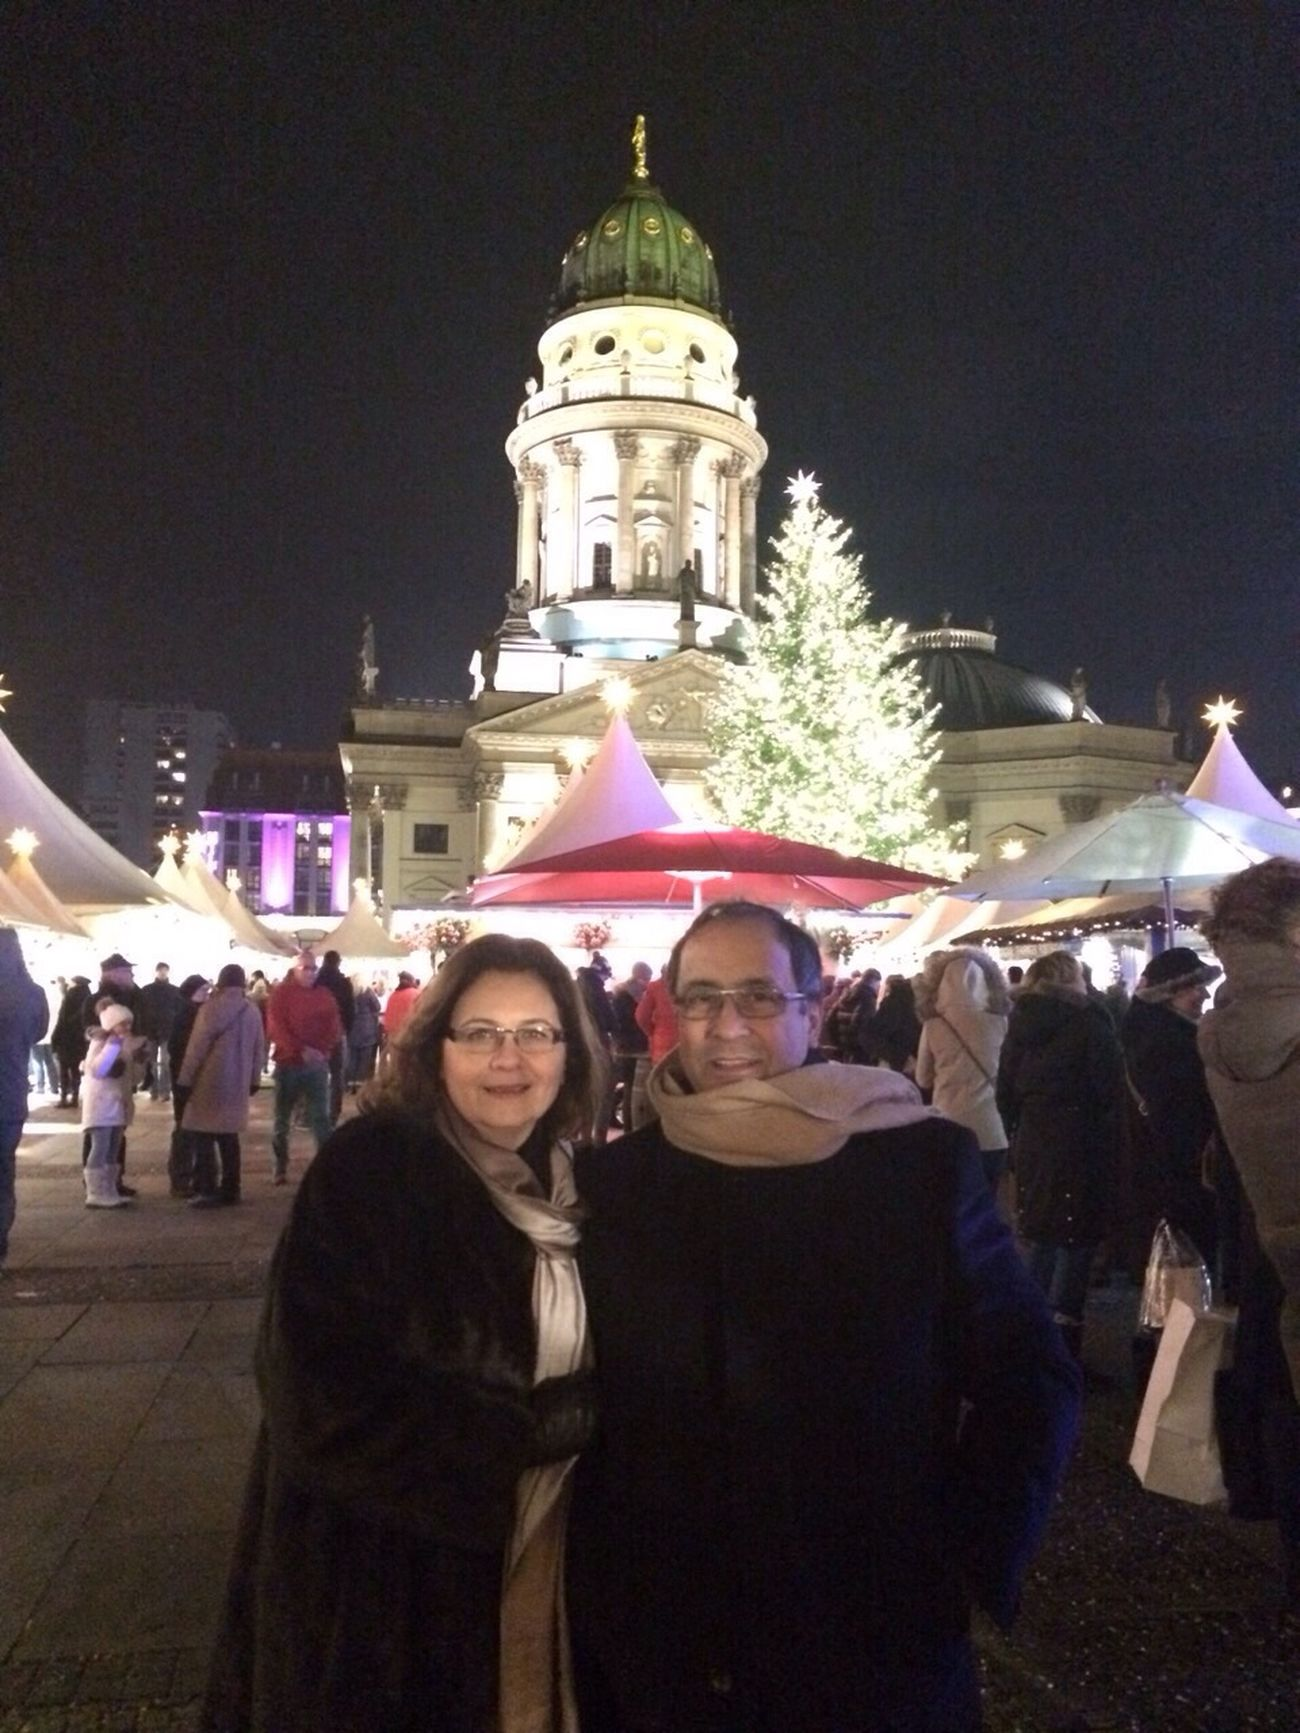 At Gendarmenmarkt Christmas Markt